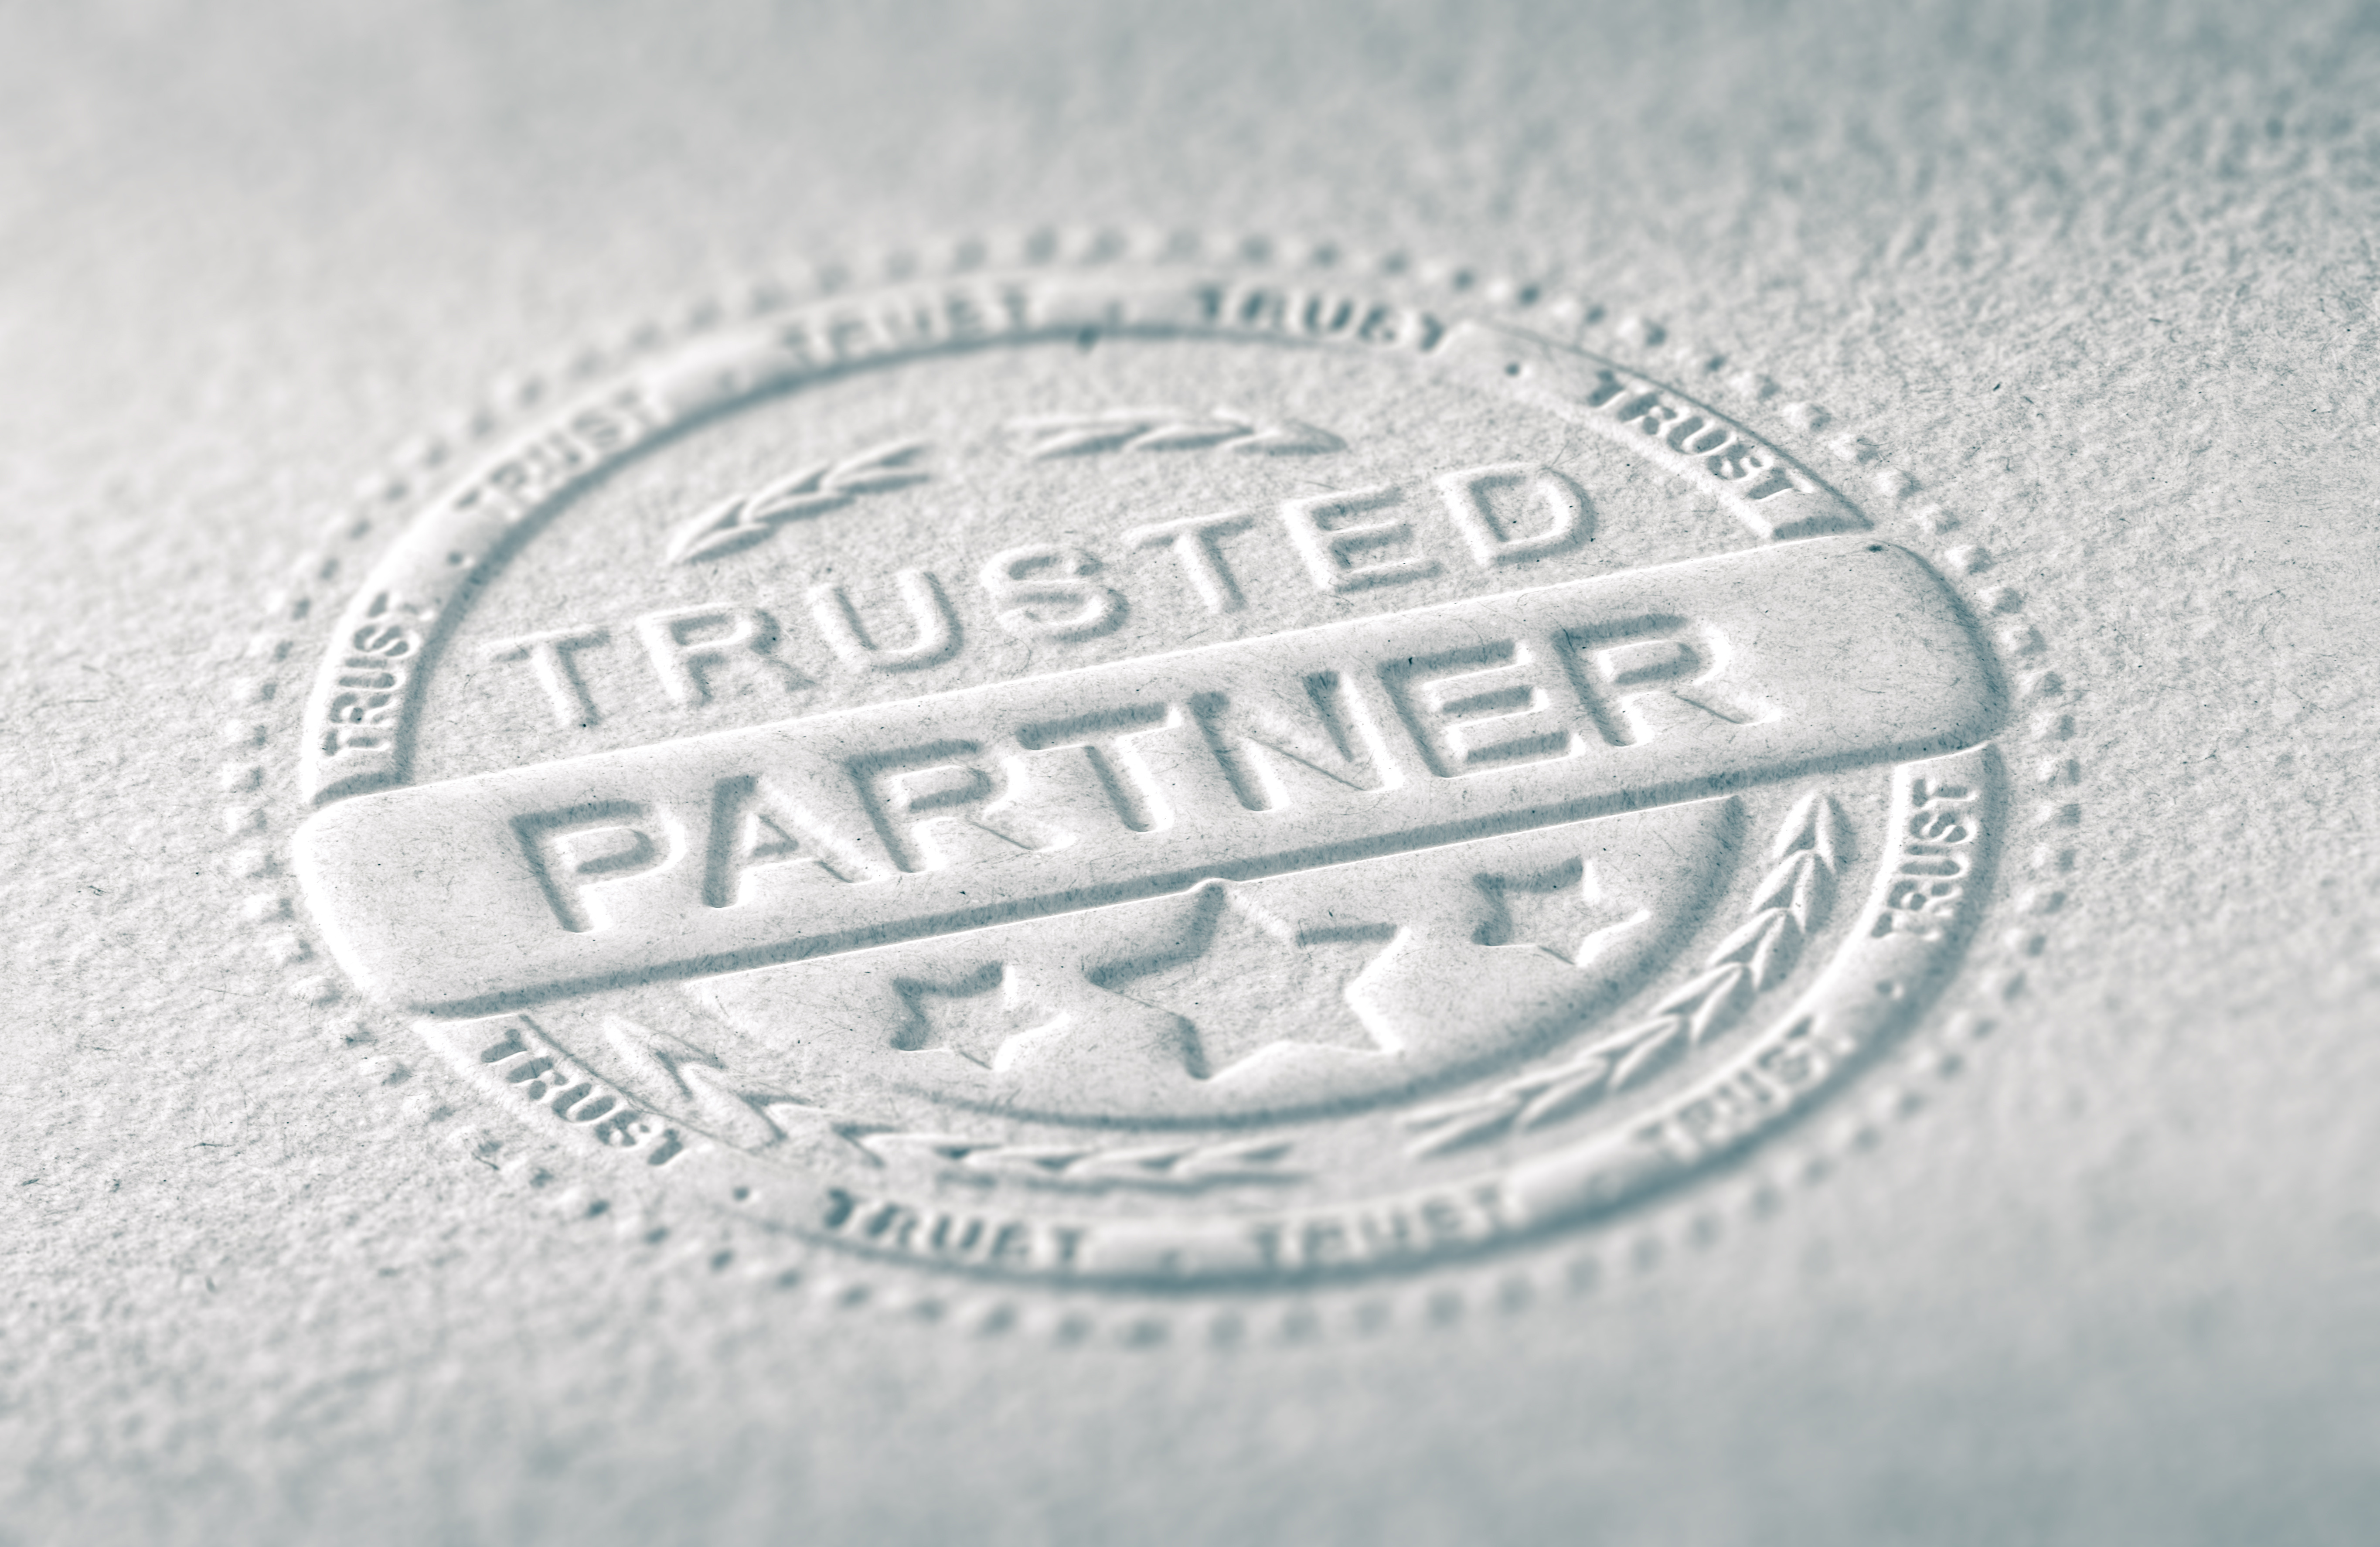 Trusted Partner Seal Image